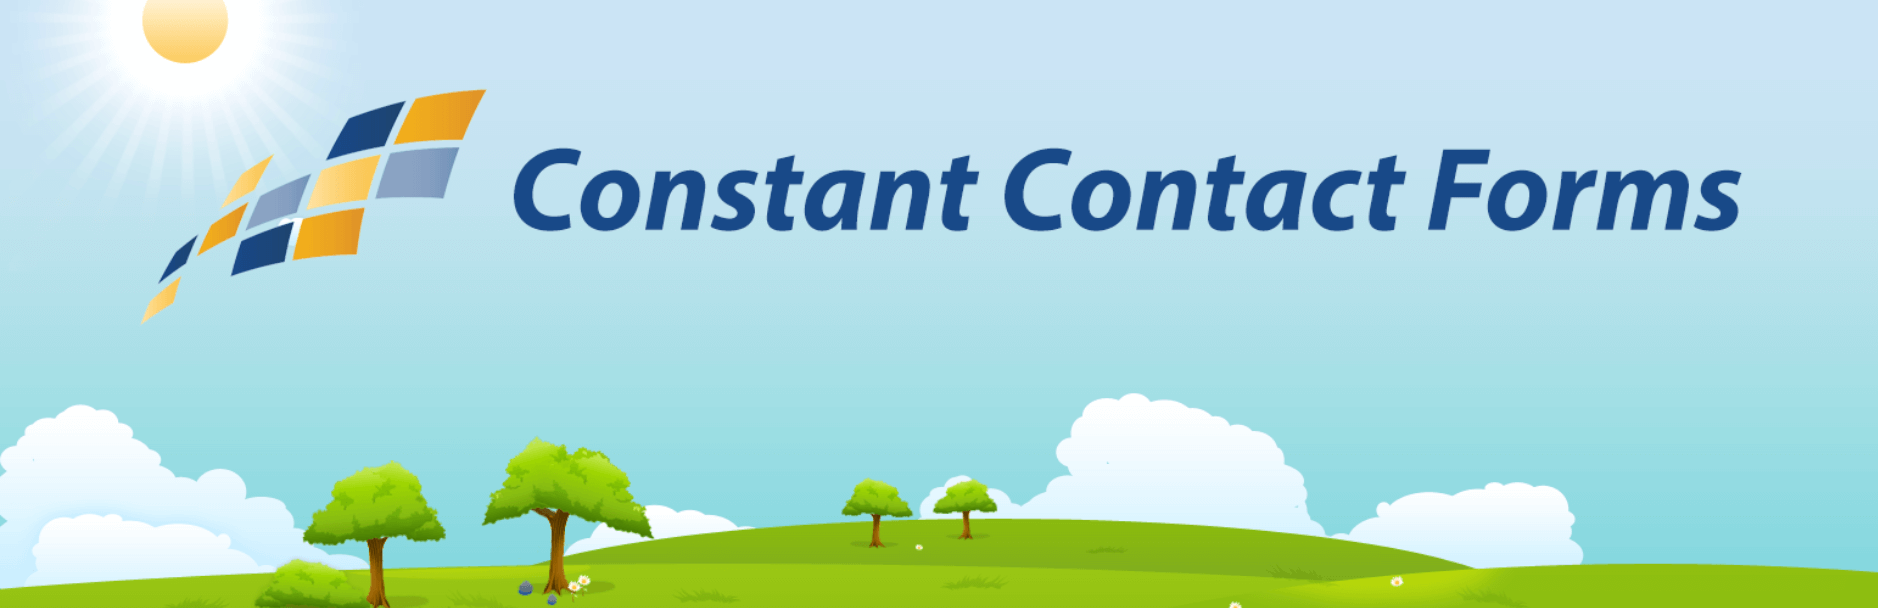 Le plugin Constant Contact Forms par MailMunch.